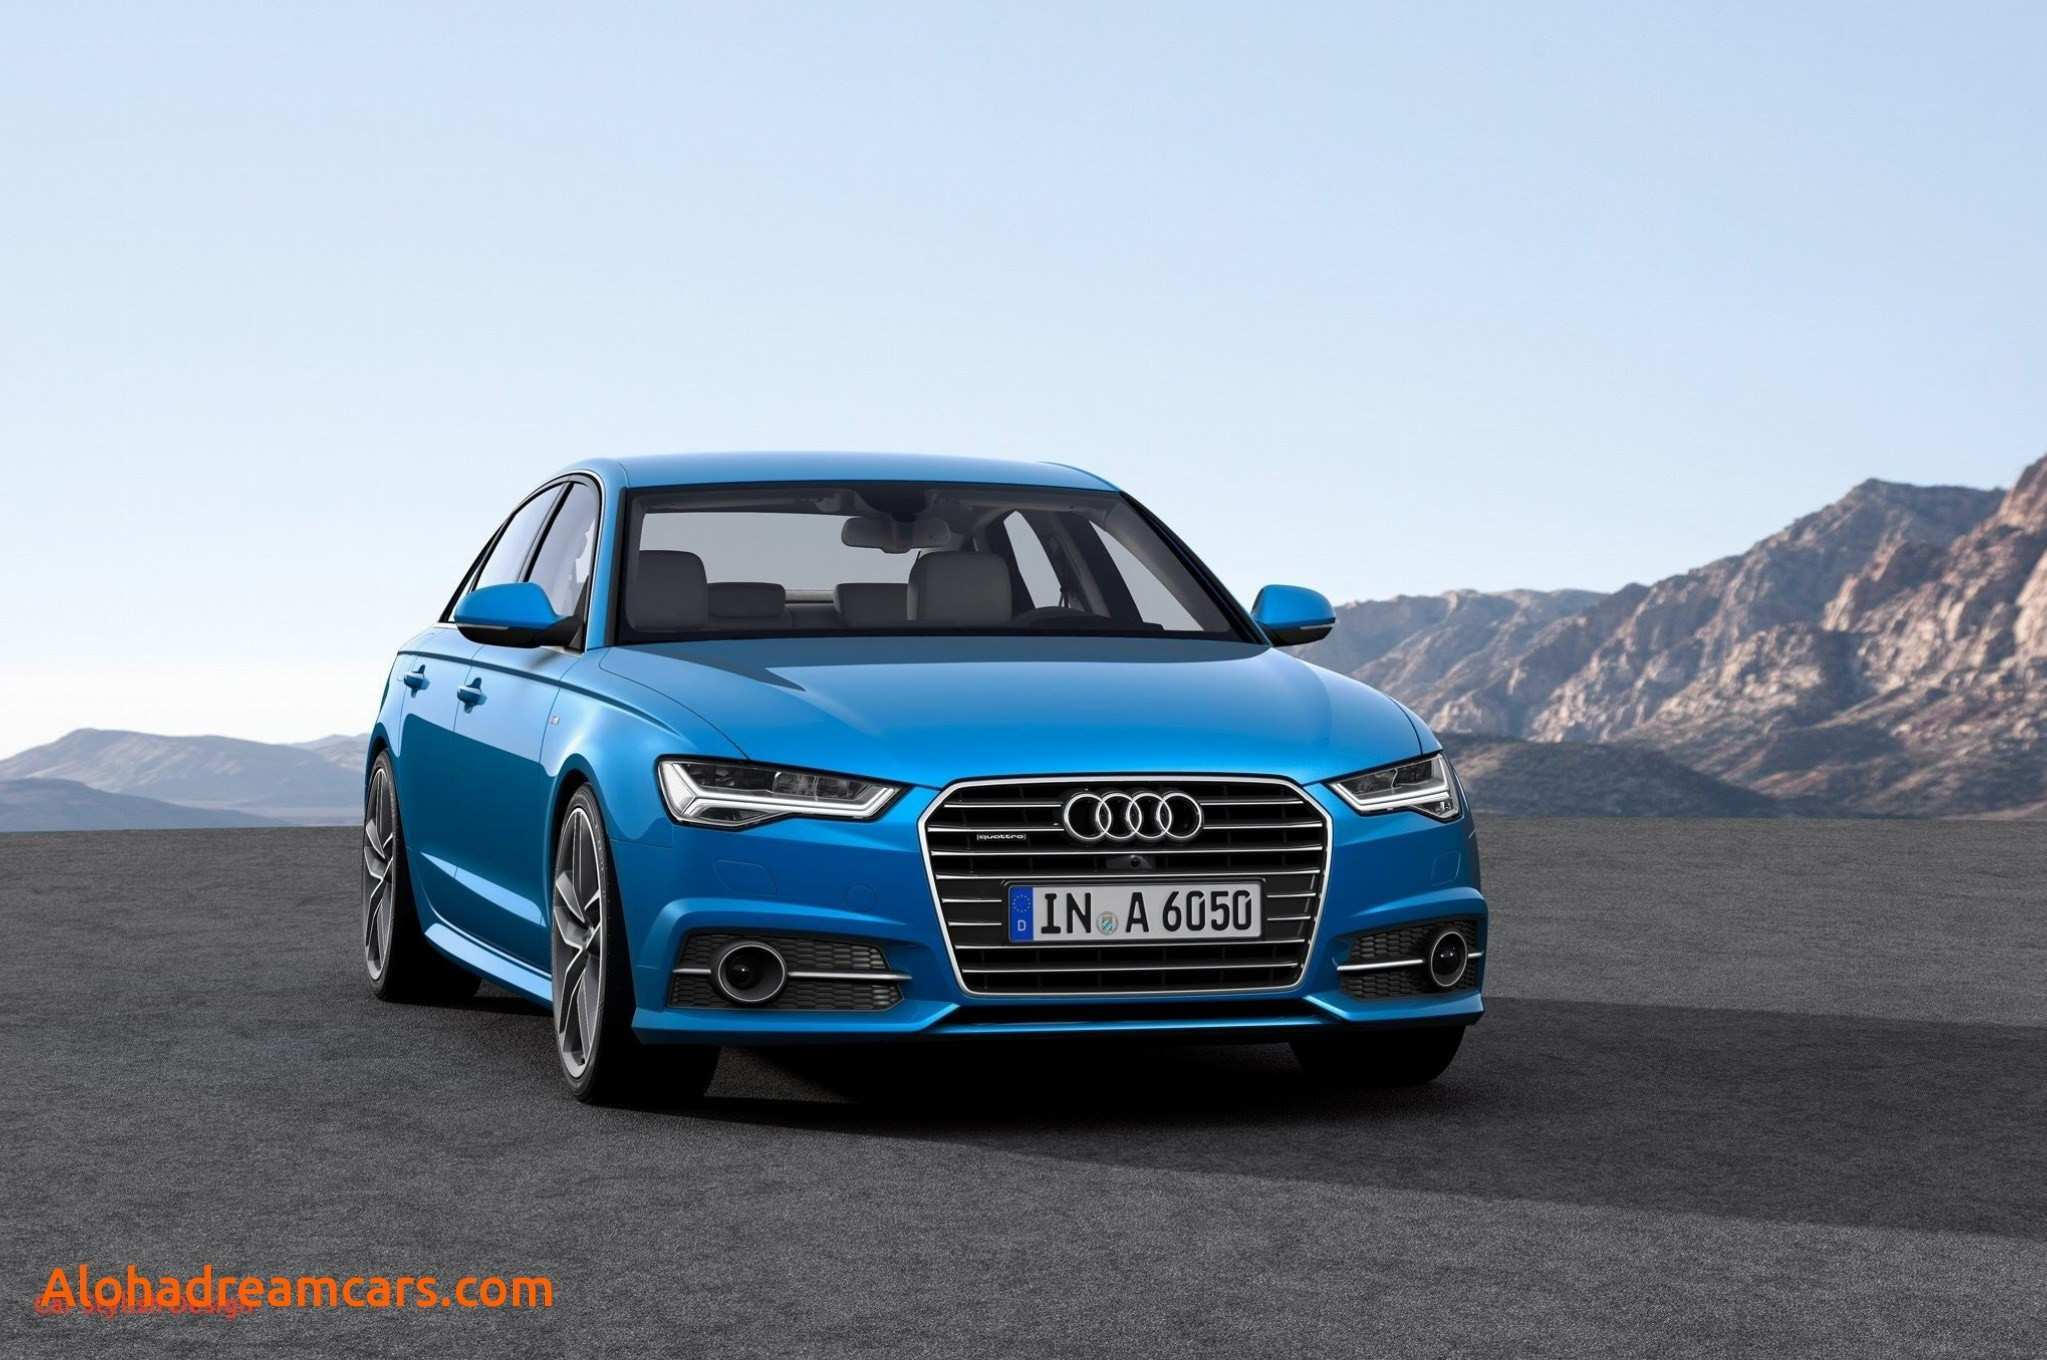 57 Best Review 2020 Audi A6 2018 New Concept by 2020 Audi A6 2018